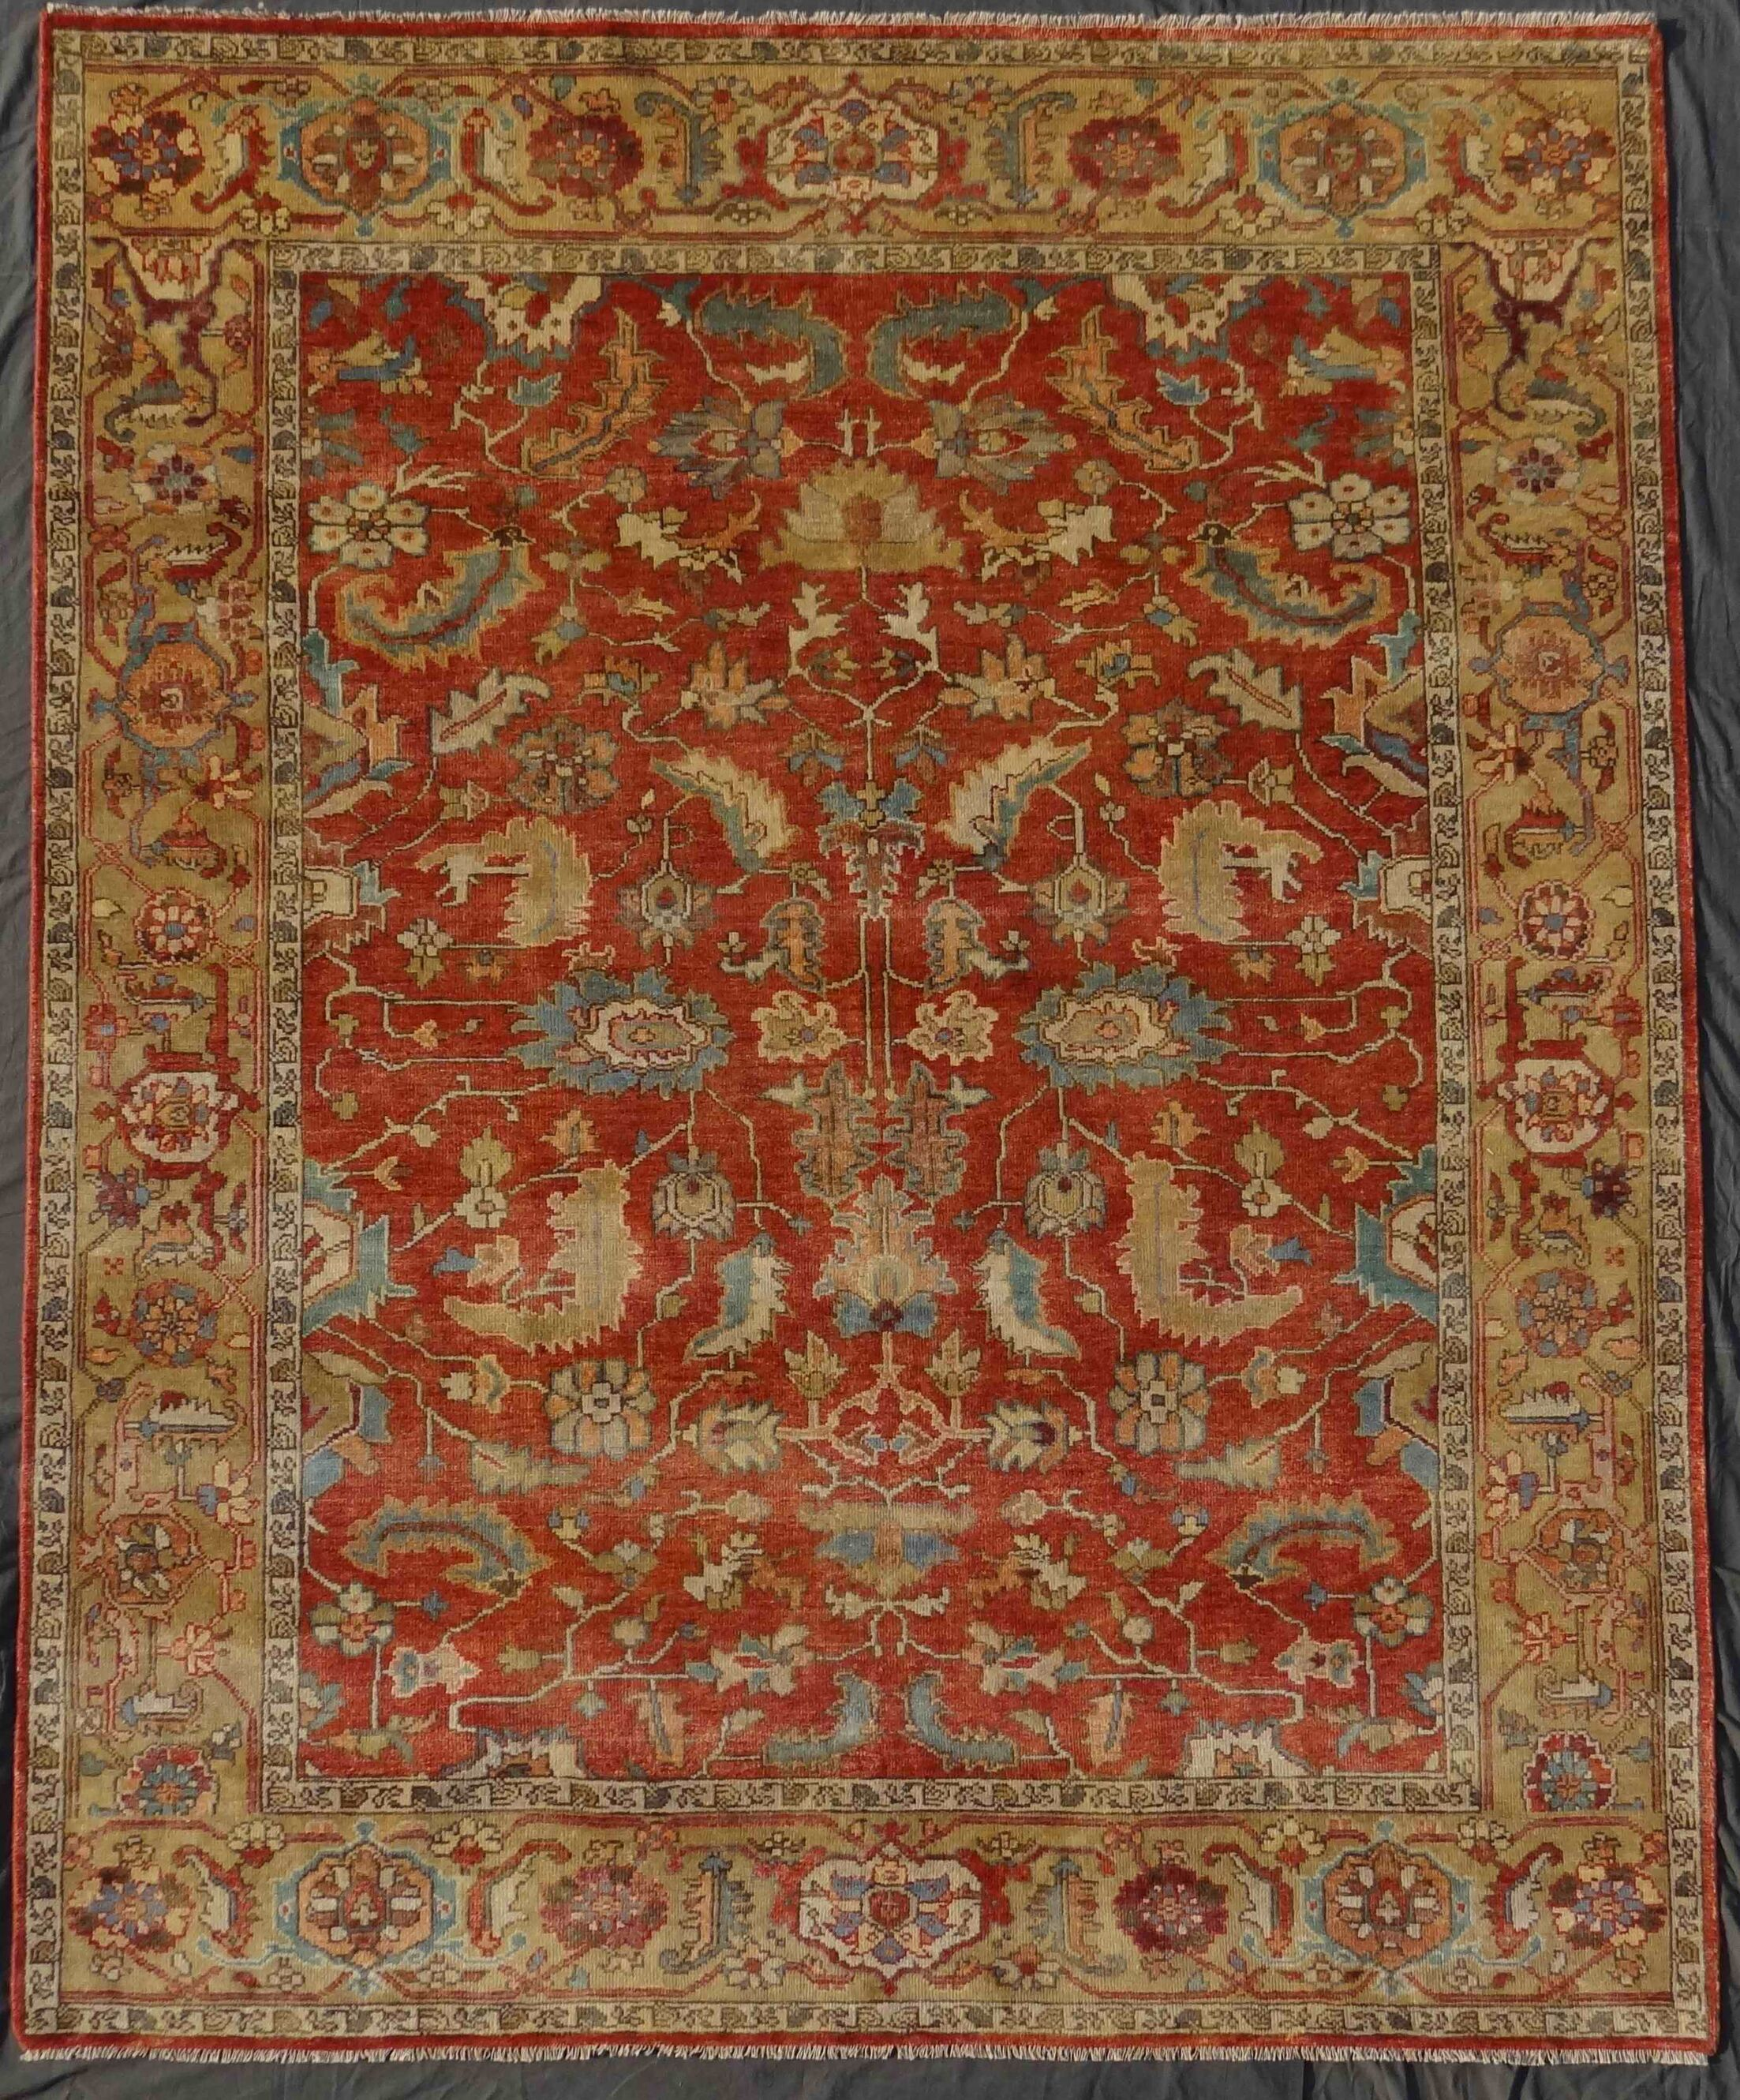 Serapi Hand-Knotted Wool Red/Beige Area Rug Rug Size: Rectangle 12' x 15'